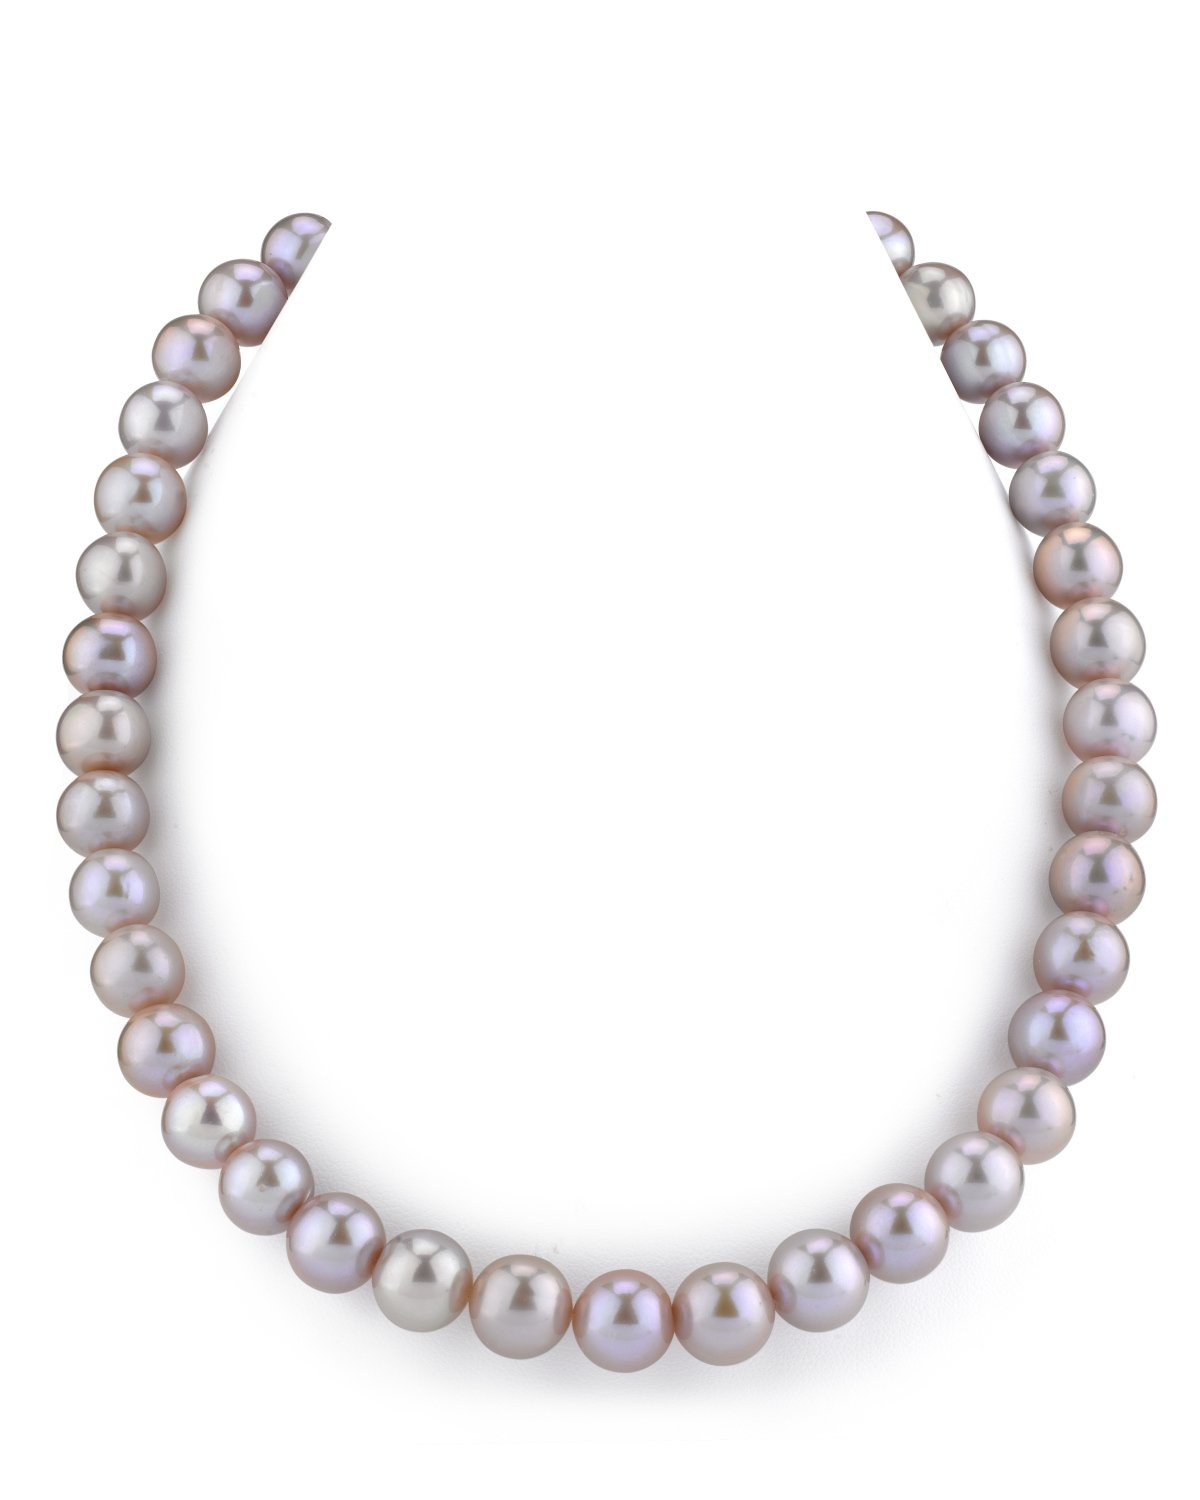 THE PEARL SOURCE 14K Gold 10-11mm AAA Quality Pink Freshwater Cultured Pearl Necklace for Women in 17'' Princess Length by The Pearl Source